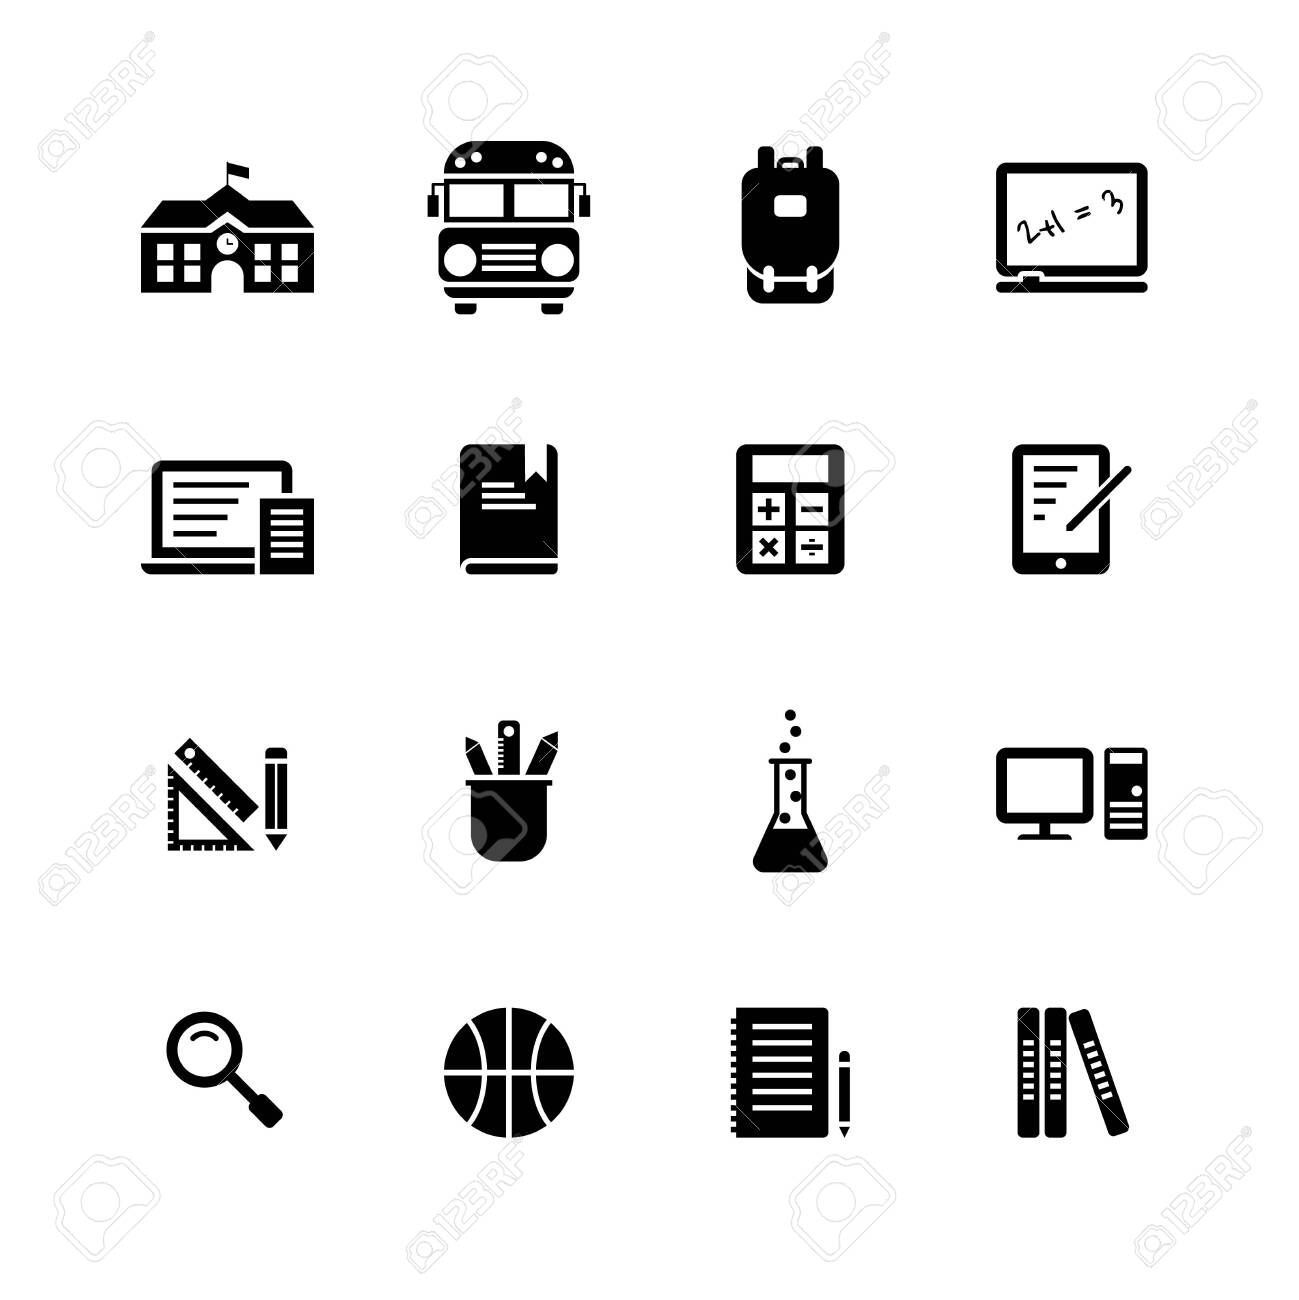 School Elements solid icon set on white background. - 126016413